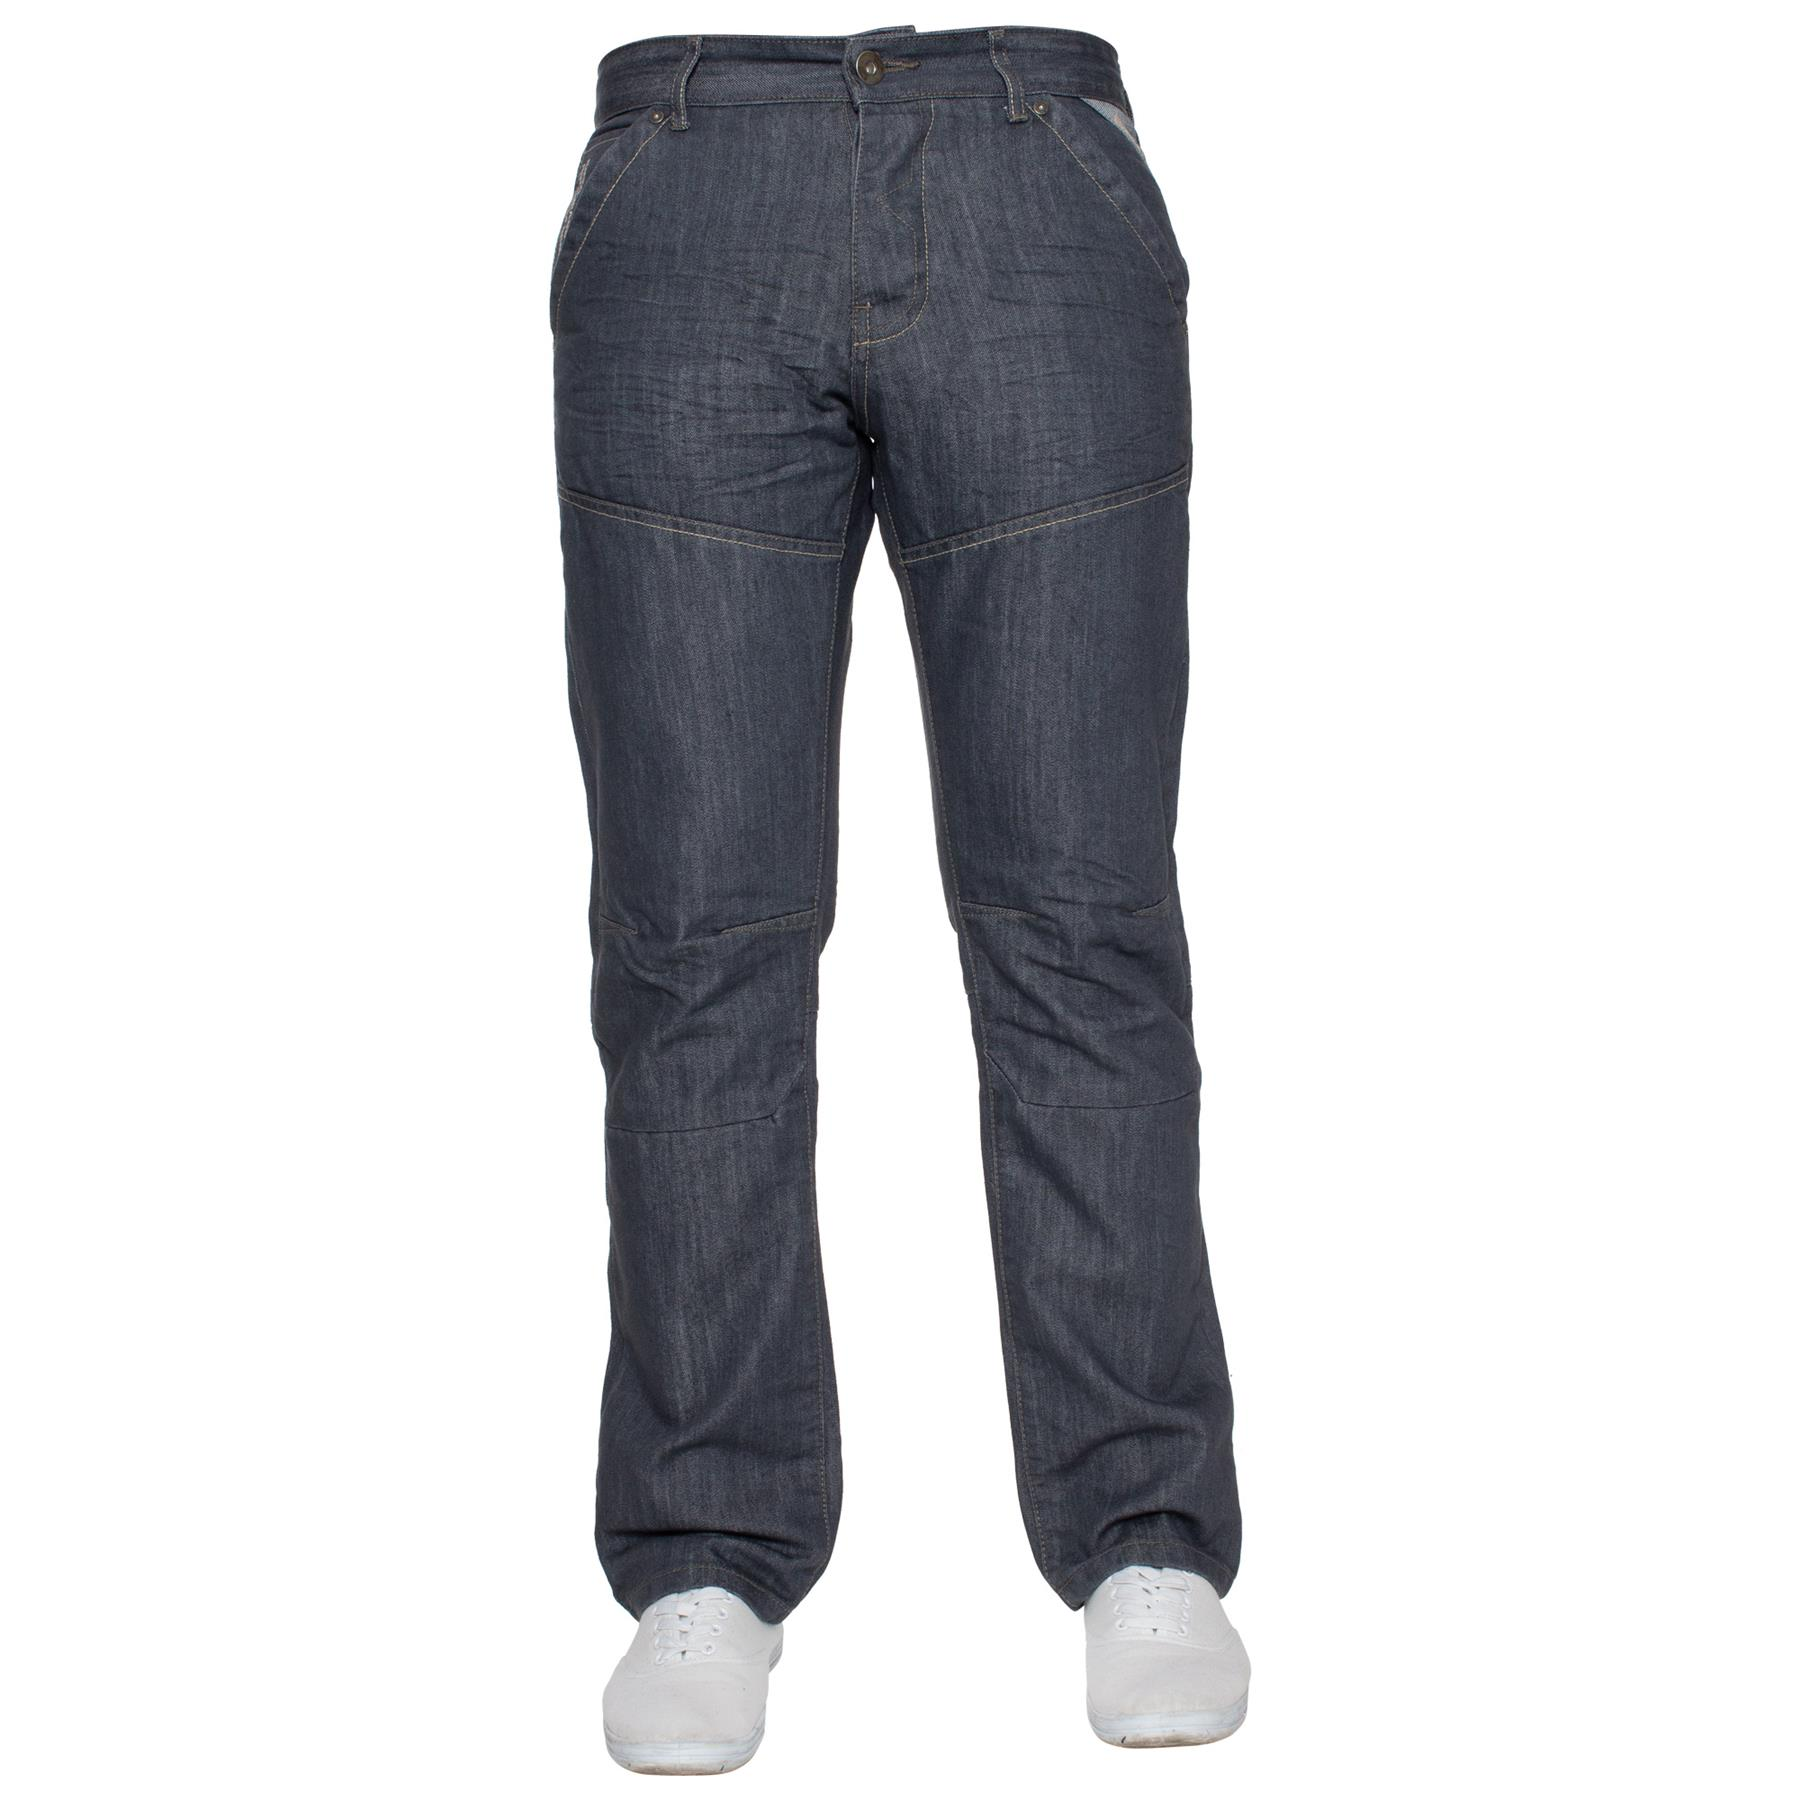 Enzo-Mens-Jeans-Big-Tall-Leg-King-Size-Denim-Pants-Chino-Trousers-Waist-44-034-60-034 miniature 90